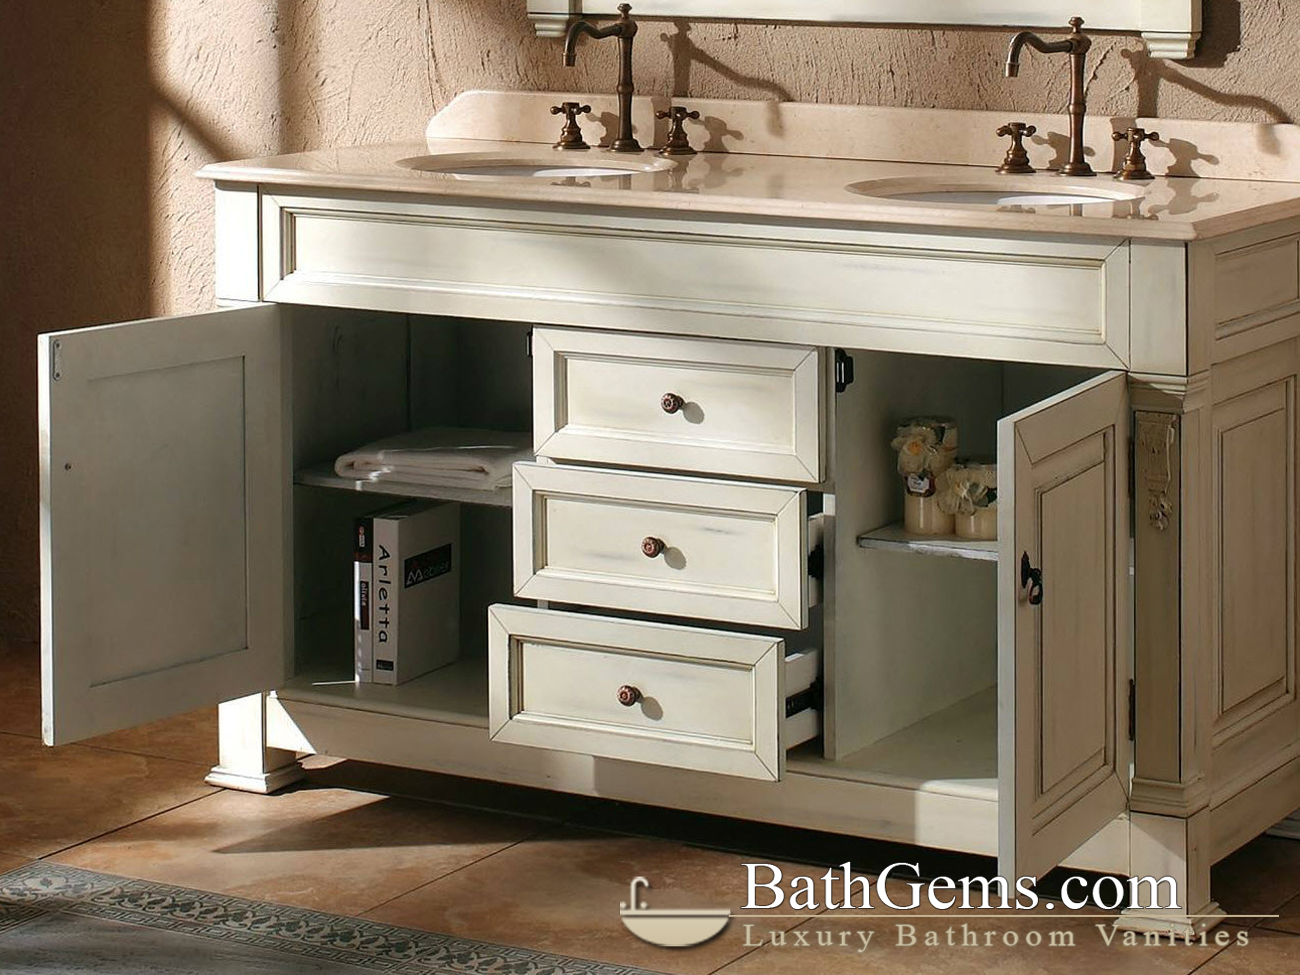 60 Peruga Double Sink Vanity Antique White